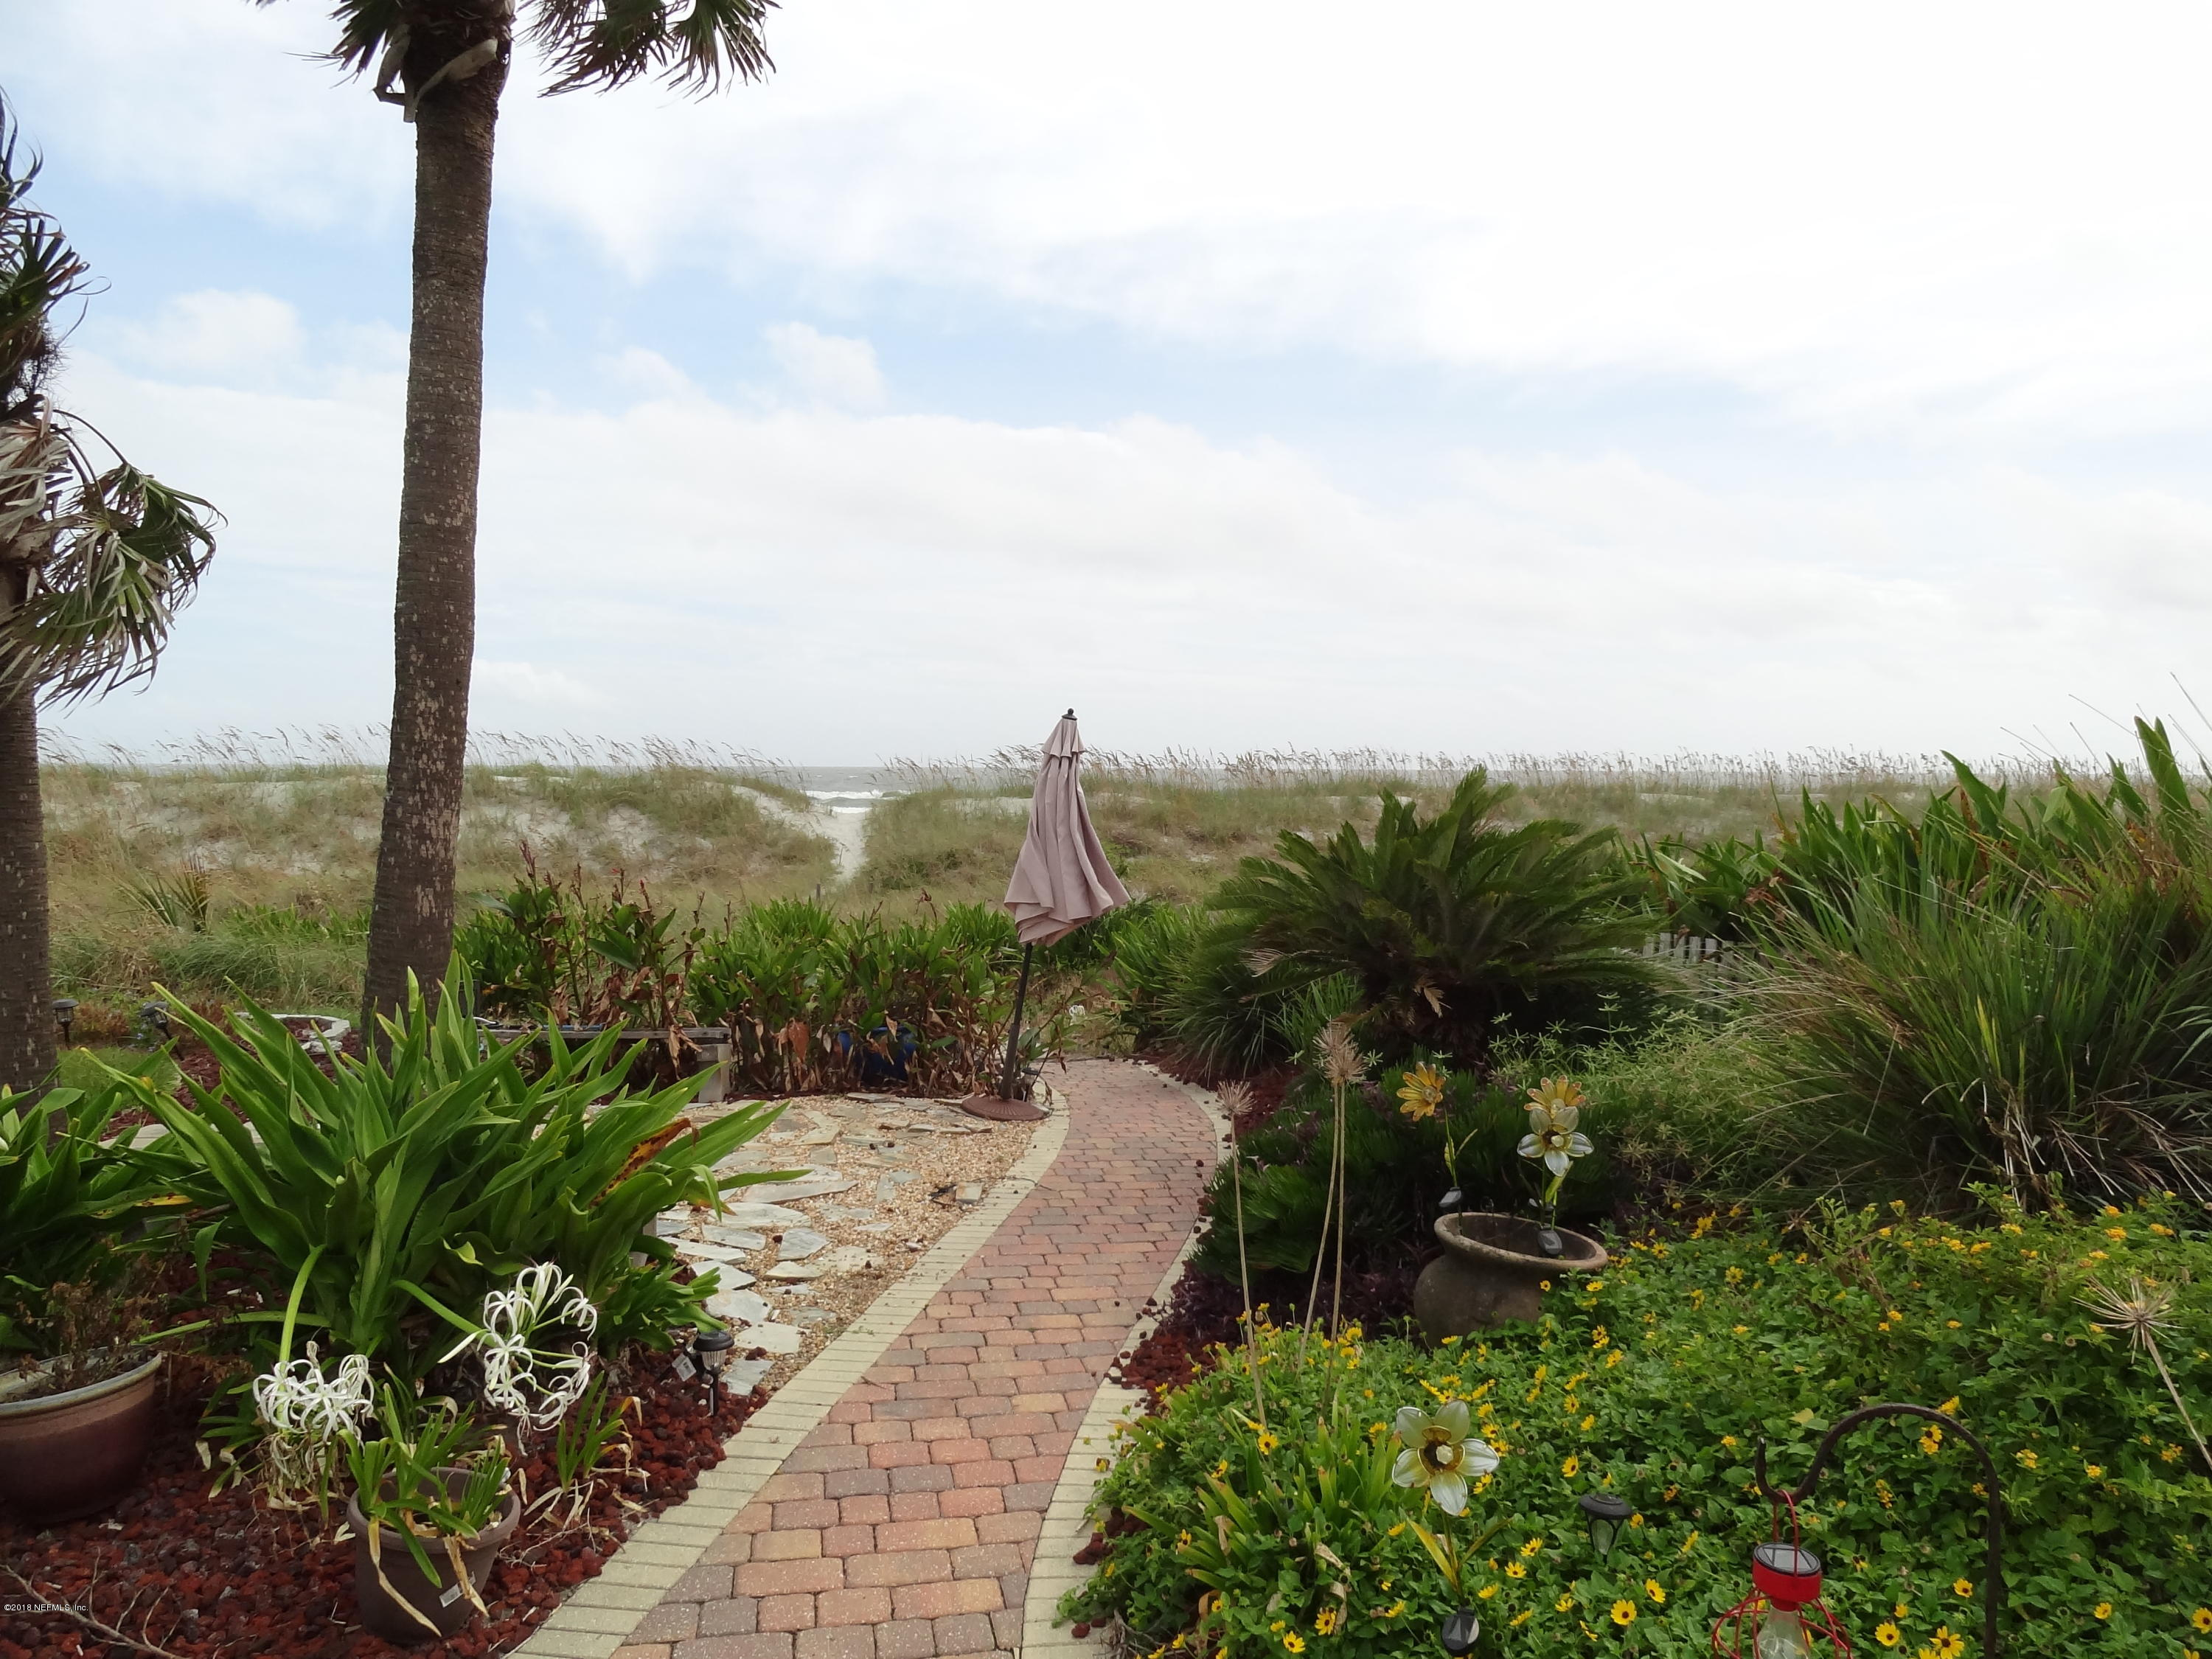 506 OCEAN FRONT, NEPTUNE BEACH, FLORIDA 32266, 4 Bedrooms Bedrooms, ,3 BathroomsBathrooms,Multi family,For sale,OCEAN FRONT,961728